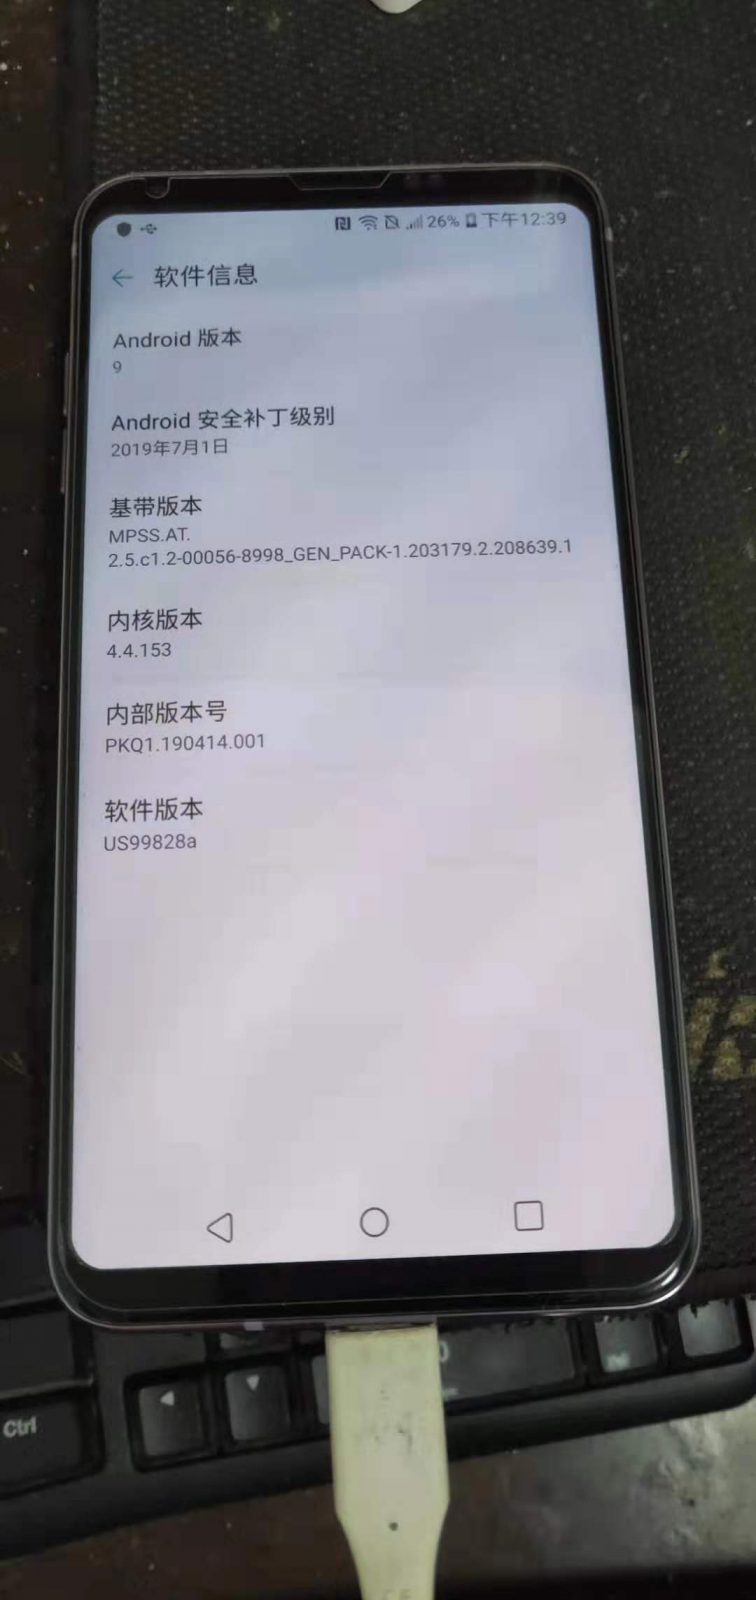 LG V30 US998 Android 9 Pie firmware V30a - My LG Cell Phones